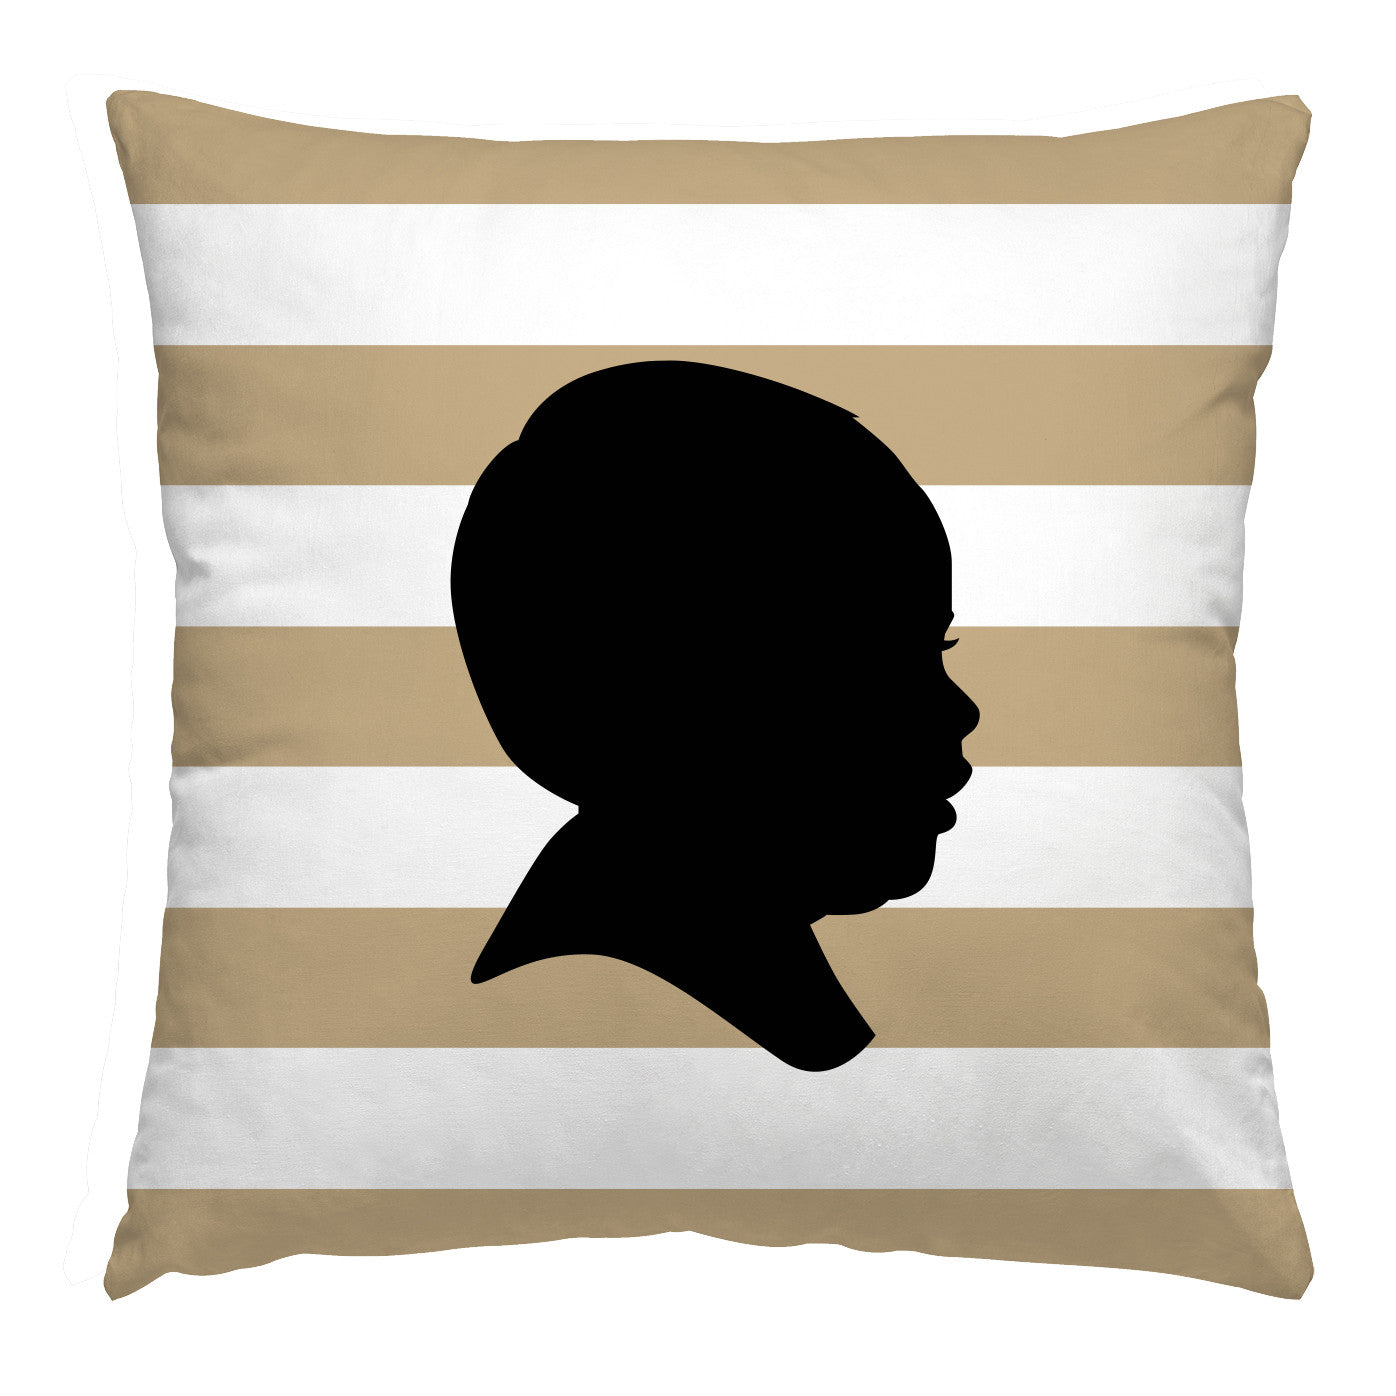 Custom Striped Silhouette Pillow